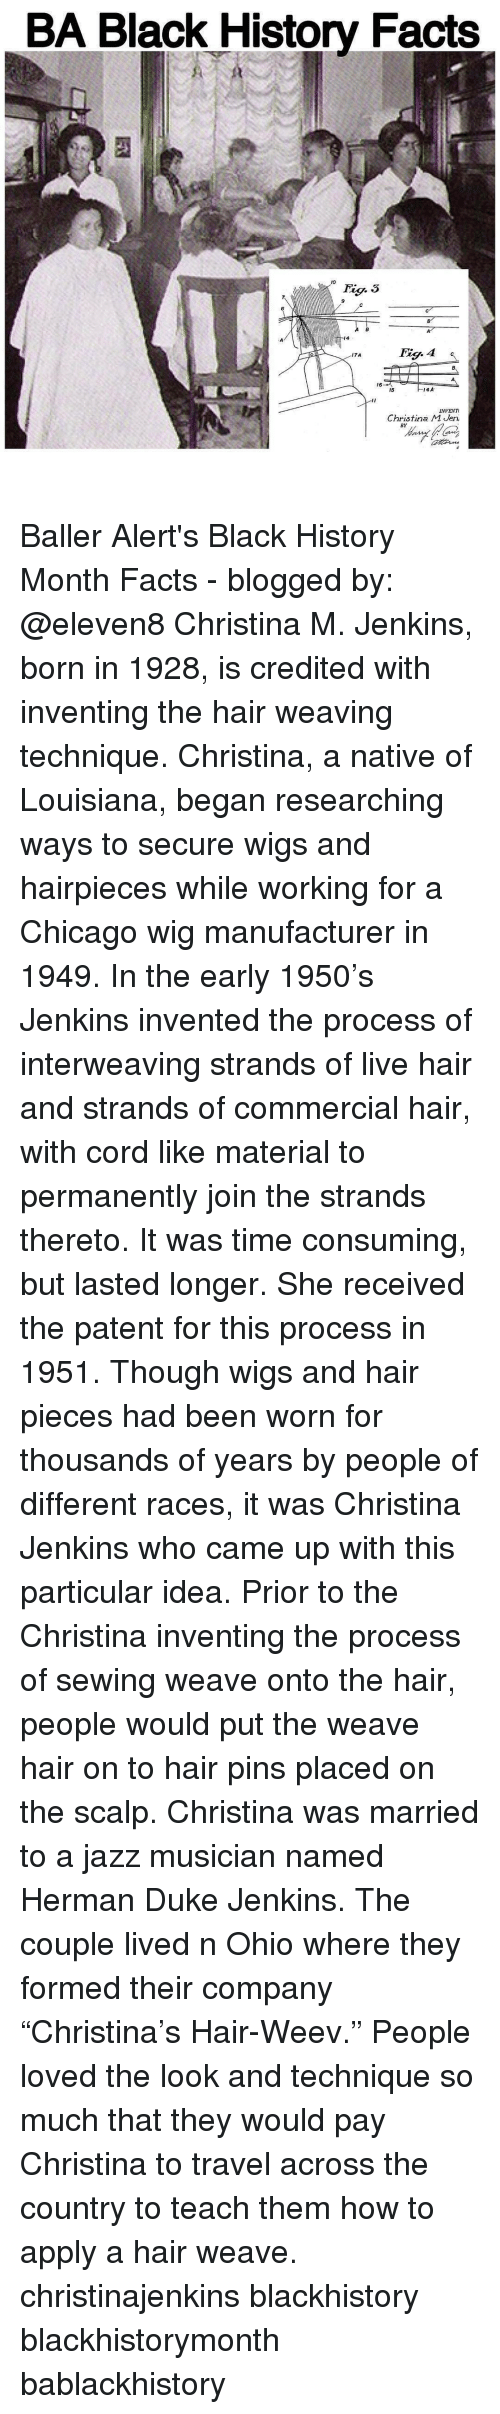 """Baller Alert, Memes, and Weave: BA Black History Facts  MO  4A  15  INVENT  Christina M Jen.  BY Baller Alert's Black History Month Facts - blogged by: @eleven8 Christina M. Jenkins, born in 1928, is credited with inventing the hair weaving technique. Christina, a native of Louisiana, began researching ways to secure wigs and hairpieces while working for a Chicago wig manufacturer in 1949. In the early 1950's Jenkins invented the process of interweaving strands of live hair and strands of commercial hair, with cord like material to permanently join the strands thereto. It was time consuming, but lasted longer. She received the patent for this process in 1951. Though wigs and hair pieces had been worn for thousands of years by people of different races, it was Christina Jenkins who came up with this particular idea. Prior to the Christina inventing the process of sewing weave onto the hair, people would put the weave hair on to hair pins placed on the scalp. Christina was married to a jazz musician named Herman Duke Jenkins. The couple lived n Ohio where they formed their company """"Christina's Hair-Weev."""" People loved the look and technique so much that they would pay Christina to travel across the country to teach them how to apply a hair weave. christinajenkins blackhistory blackhistorymonth bablackhistory"""